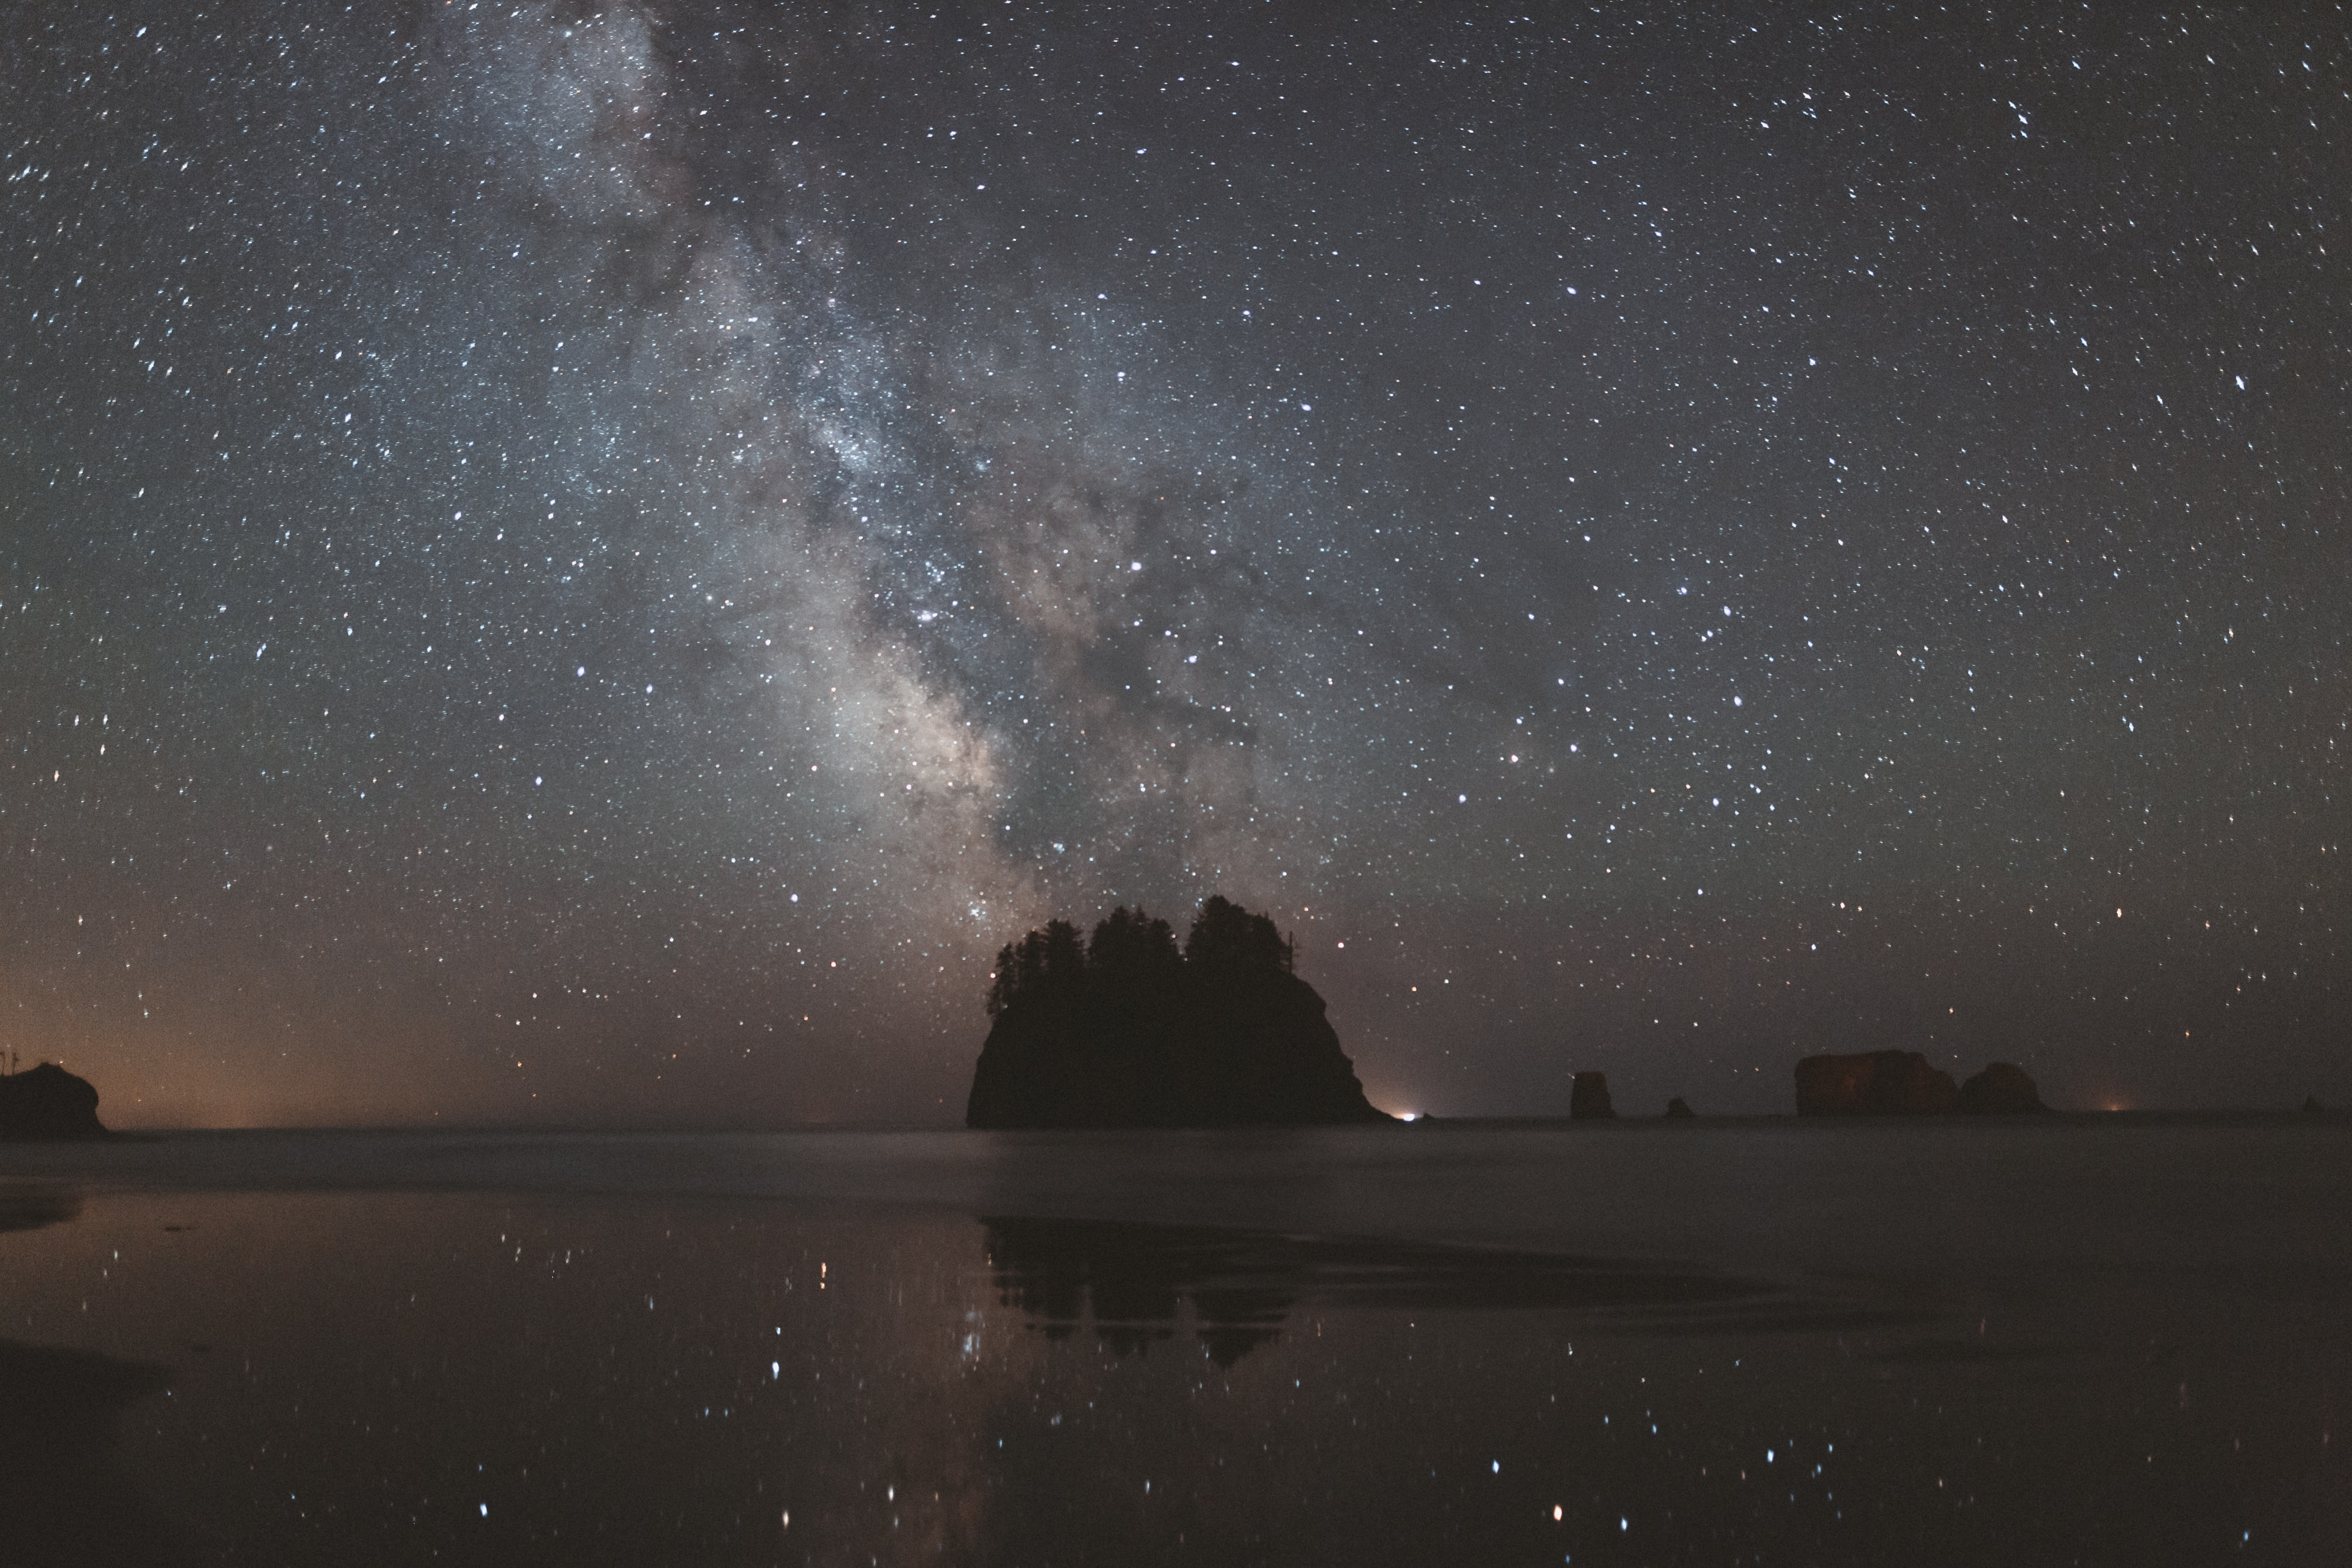 View of the night sky filled with stars and galaxies reflected in the water at Second Beach